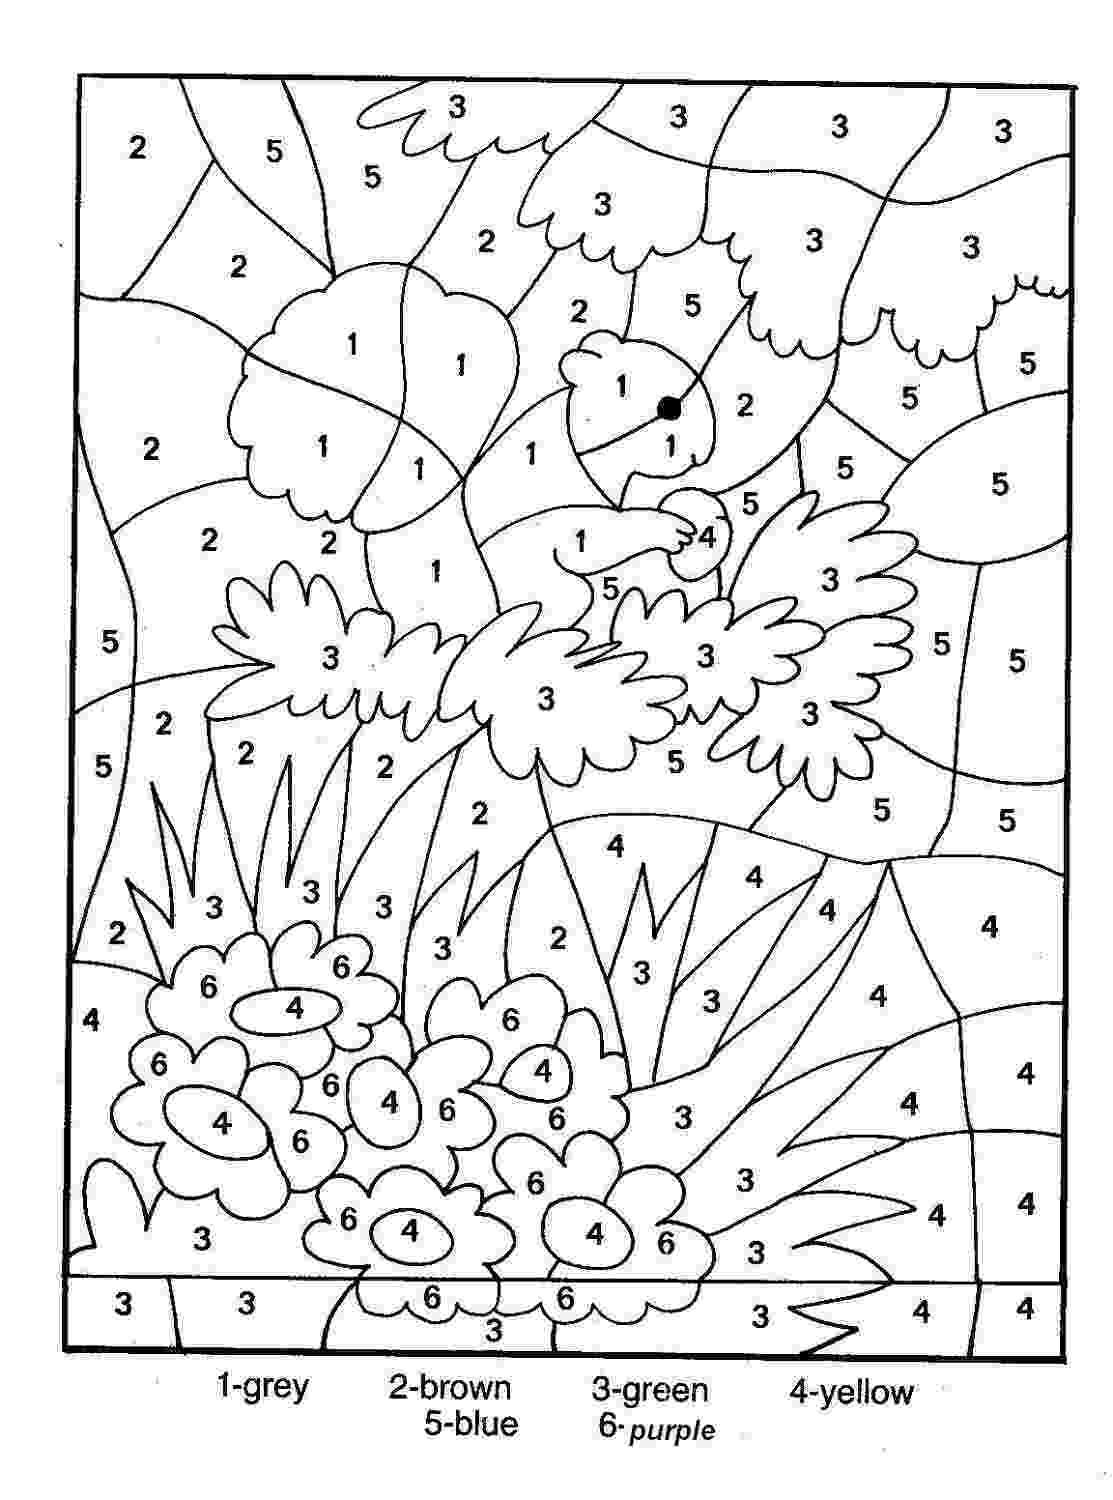 pictures to color by number free color by number worksheets cool2bkids by pictures color to number